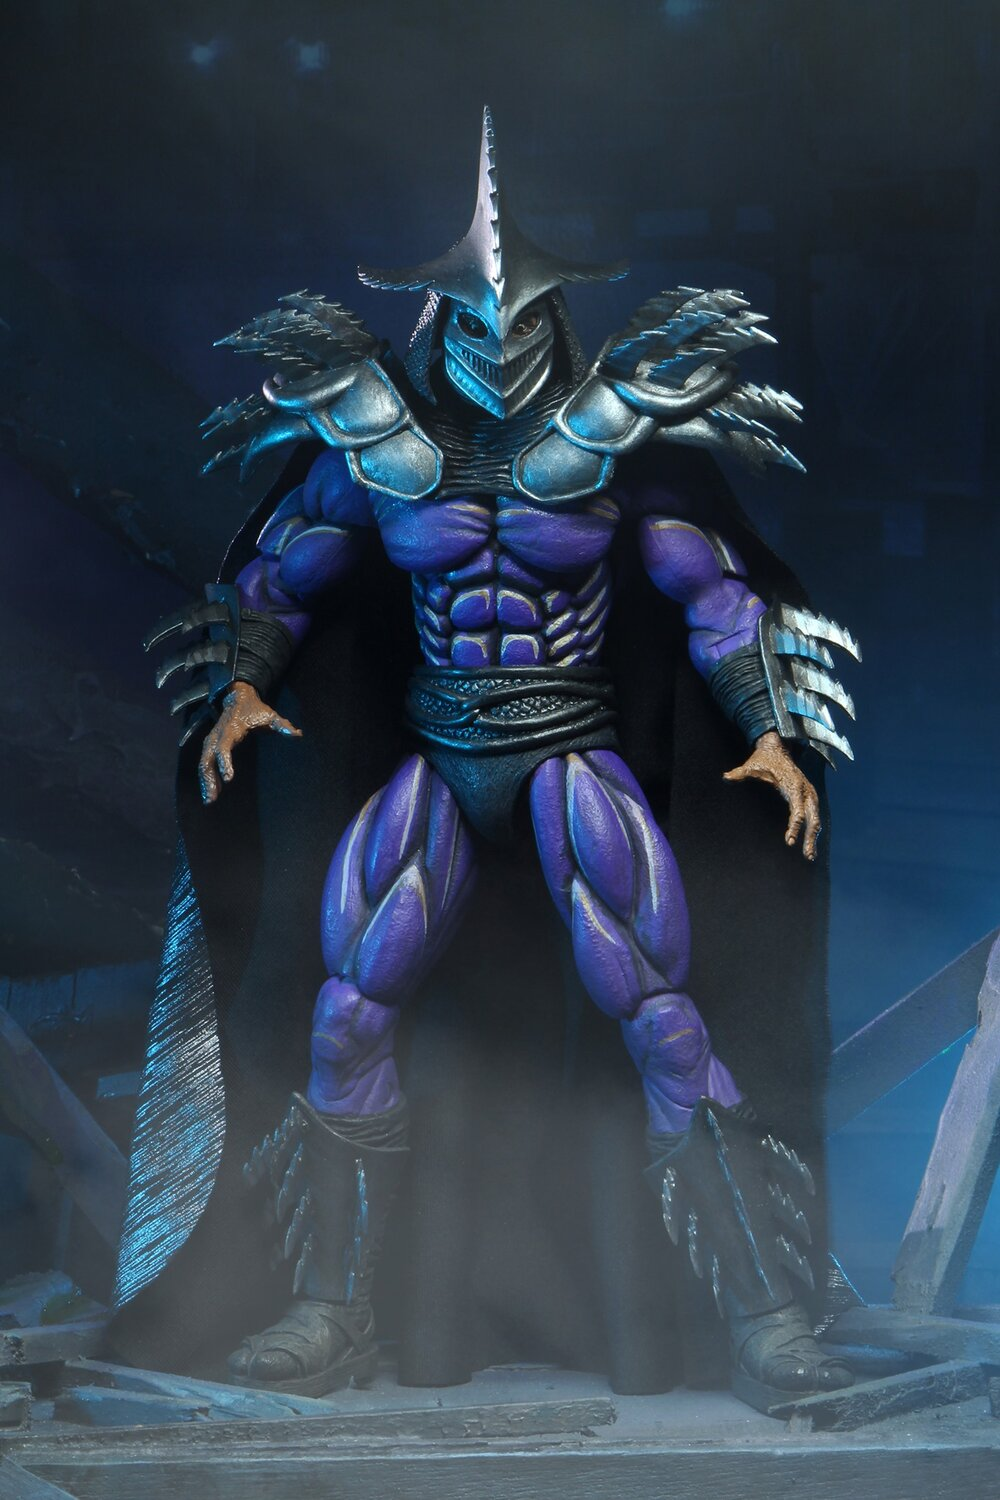 NECA-TMNT-2-Deluxe-Super-Shredder-009.jpg